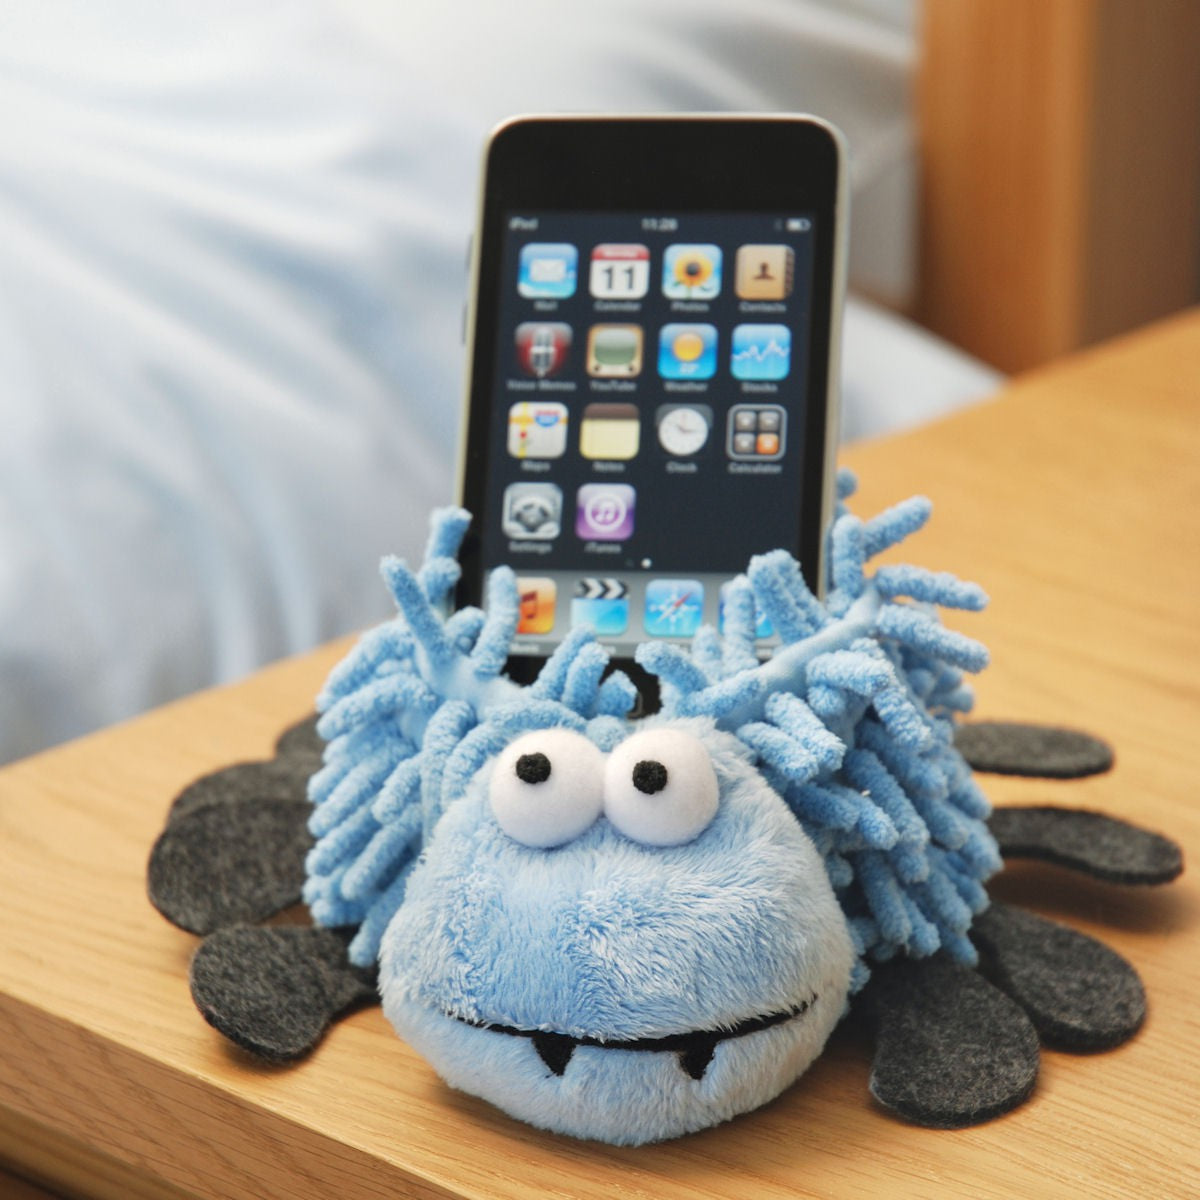 Aroma Home Mobile Phone Holder - Spider